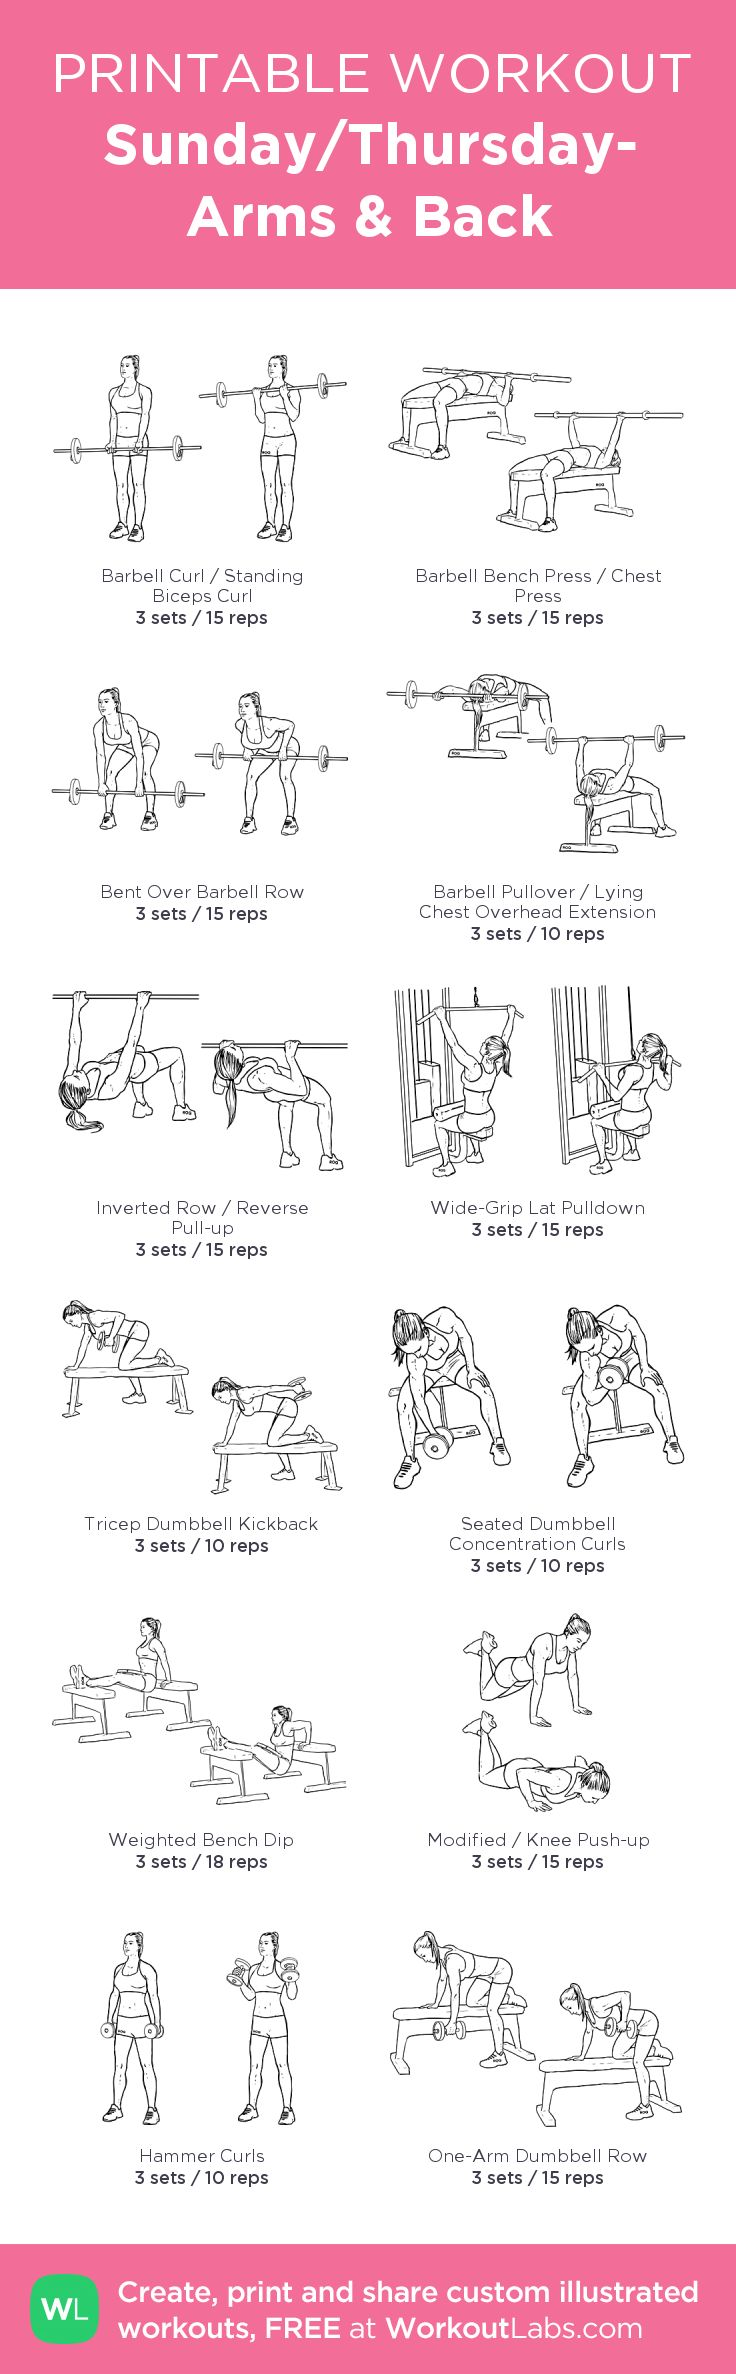 ARMS WORKOUT created at WorkoutLabs.com • Click through to customize and download as a FREE PDF! #customworkout